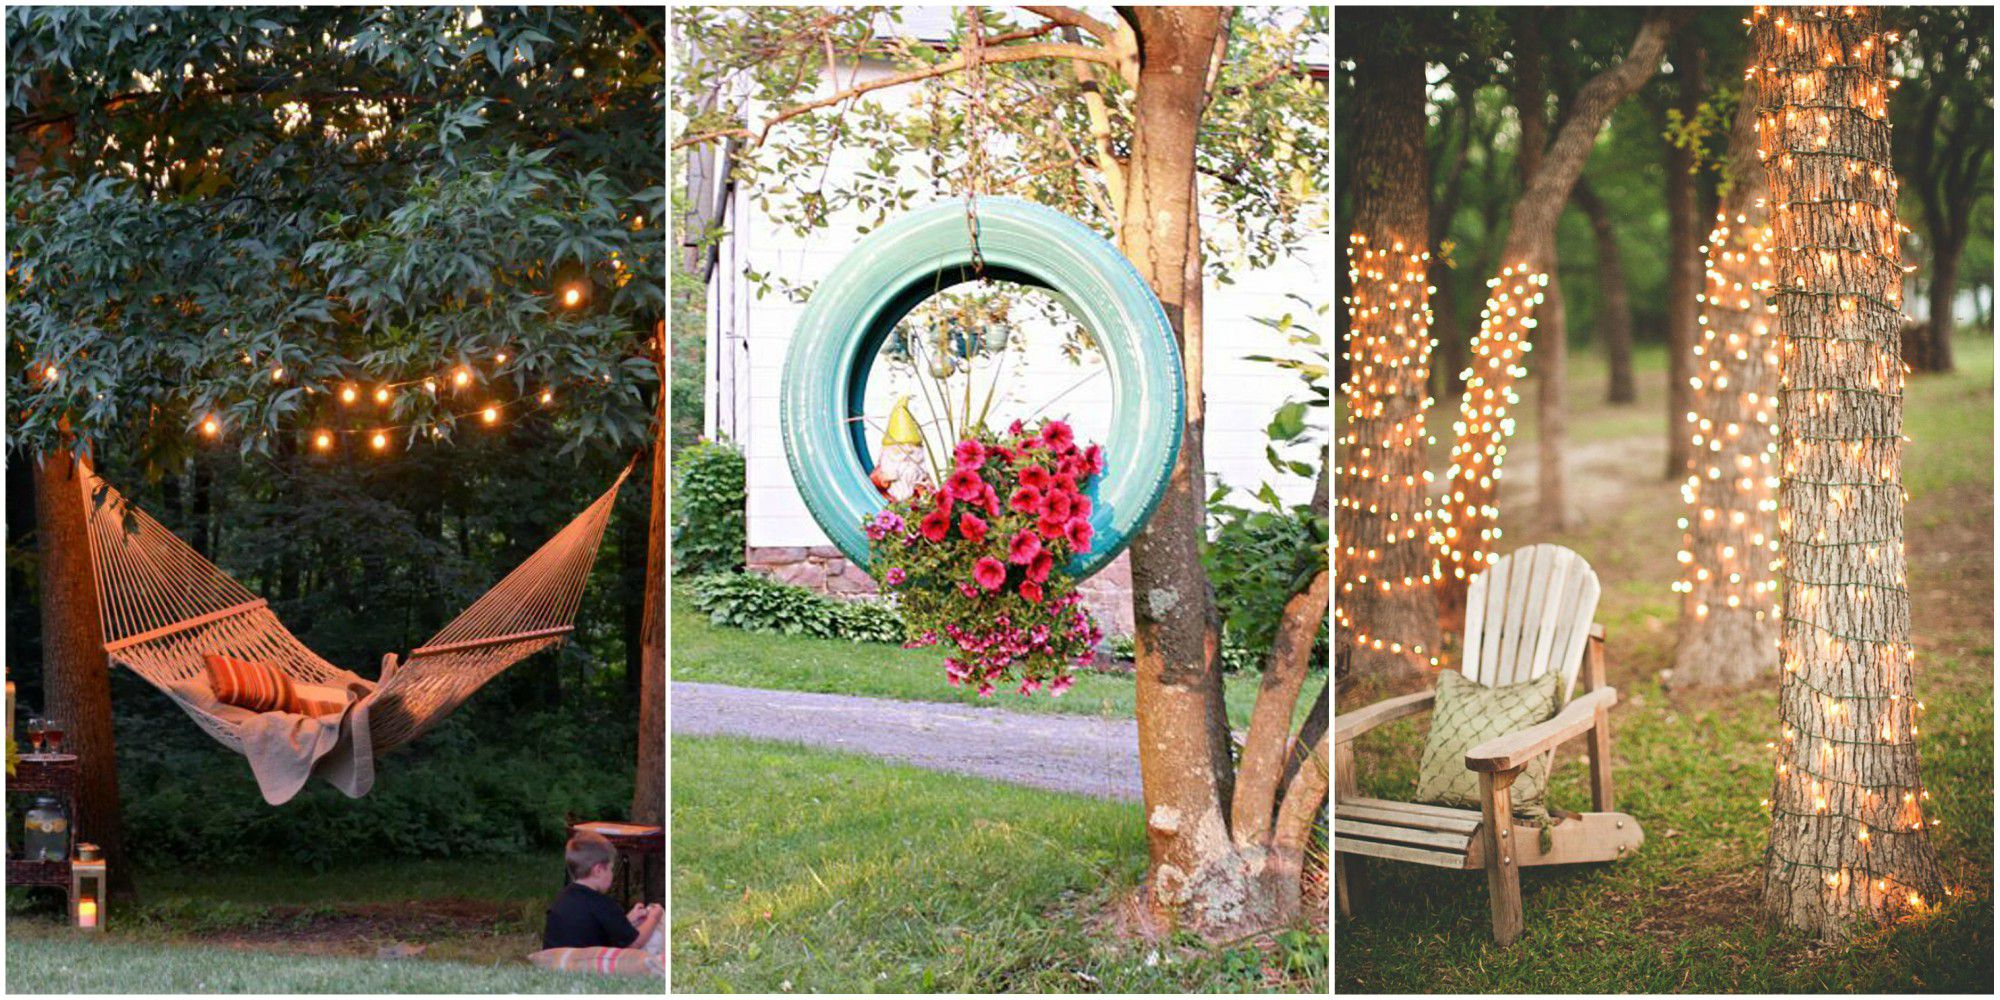 100+ Best Outdoor Decor Ideas - Country Living